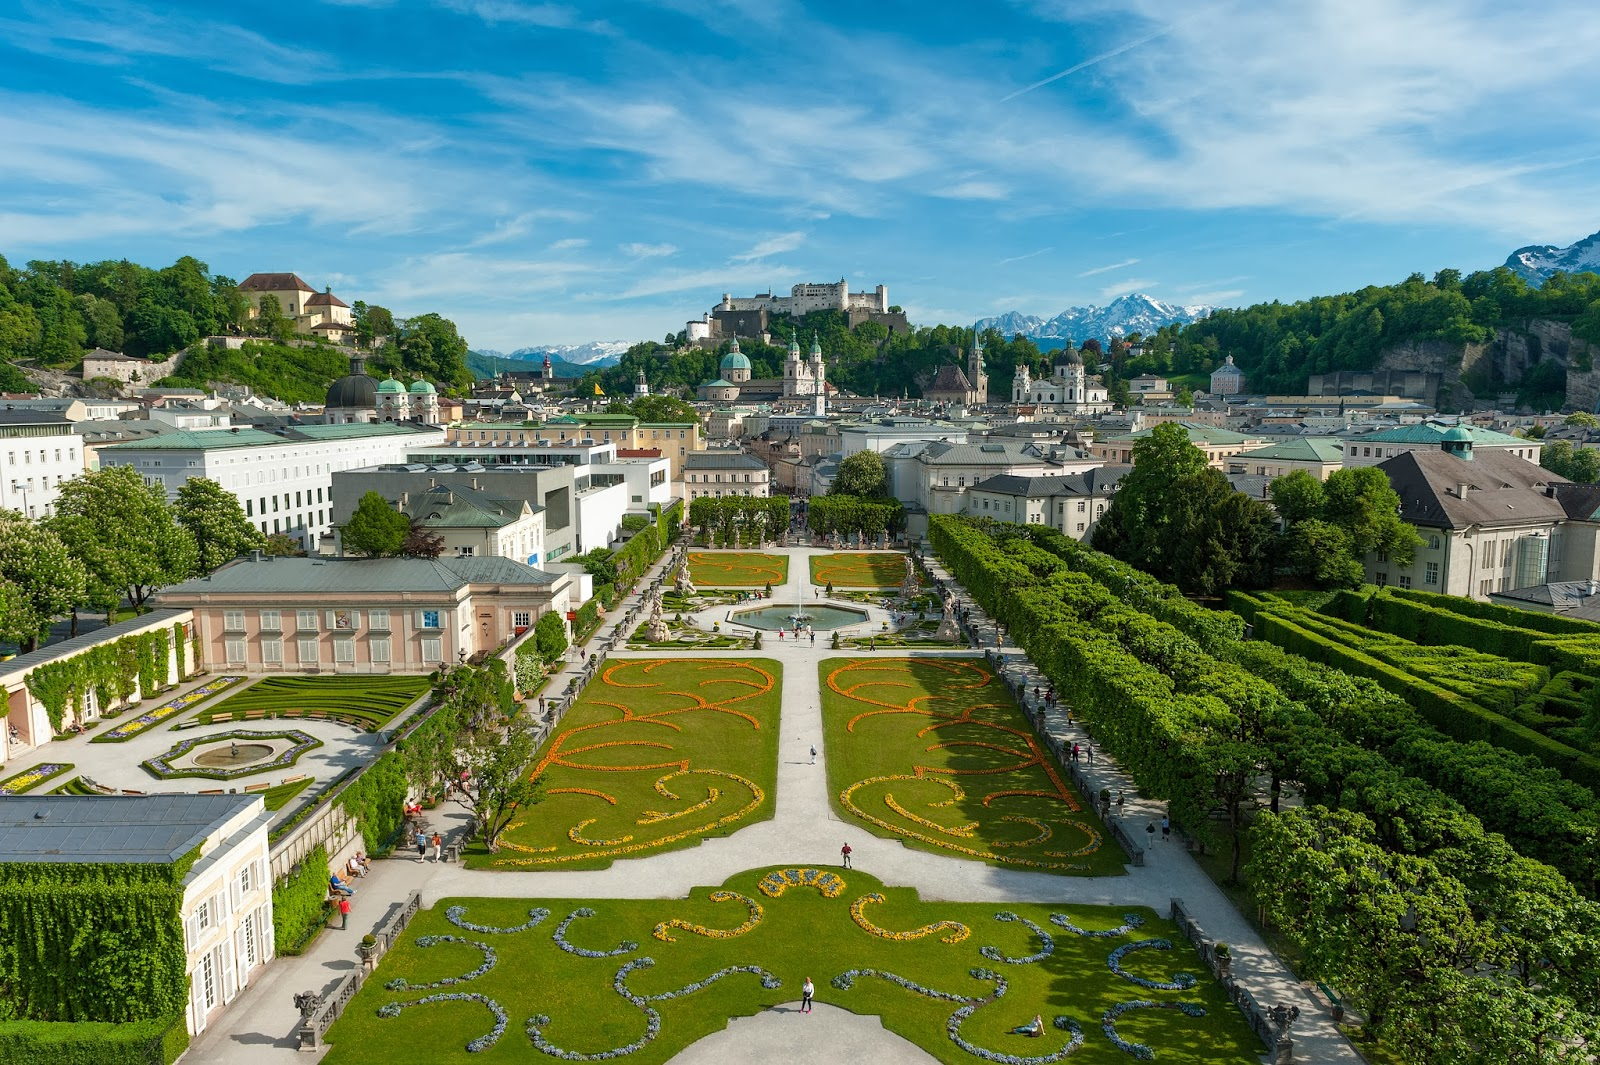 Spectacular view of Mirabell Gardnes, the Salzburg Cathedral and rising above it all, the magnificent Festung Hohensalzburg. Photo: Property of Tourismus Salzburg.